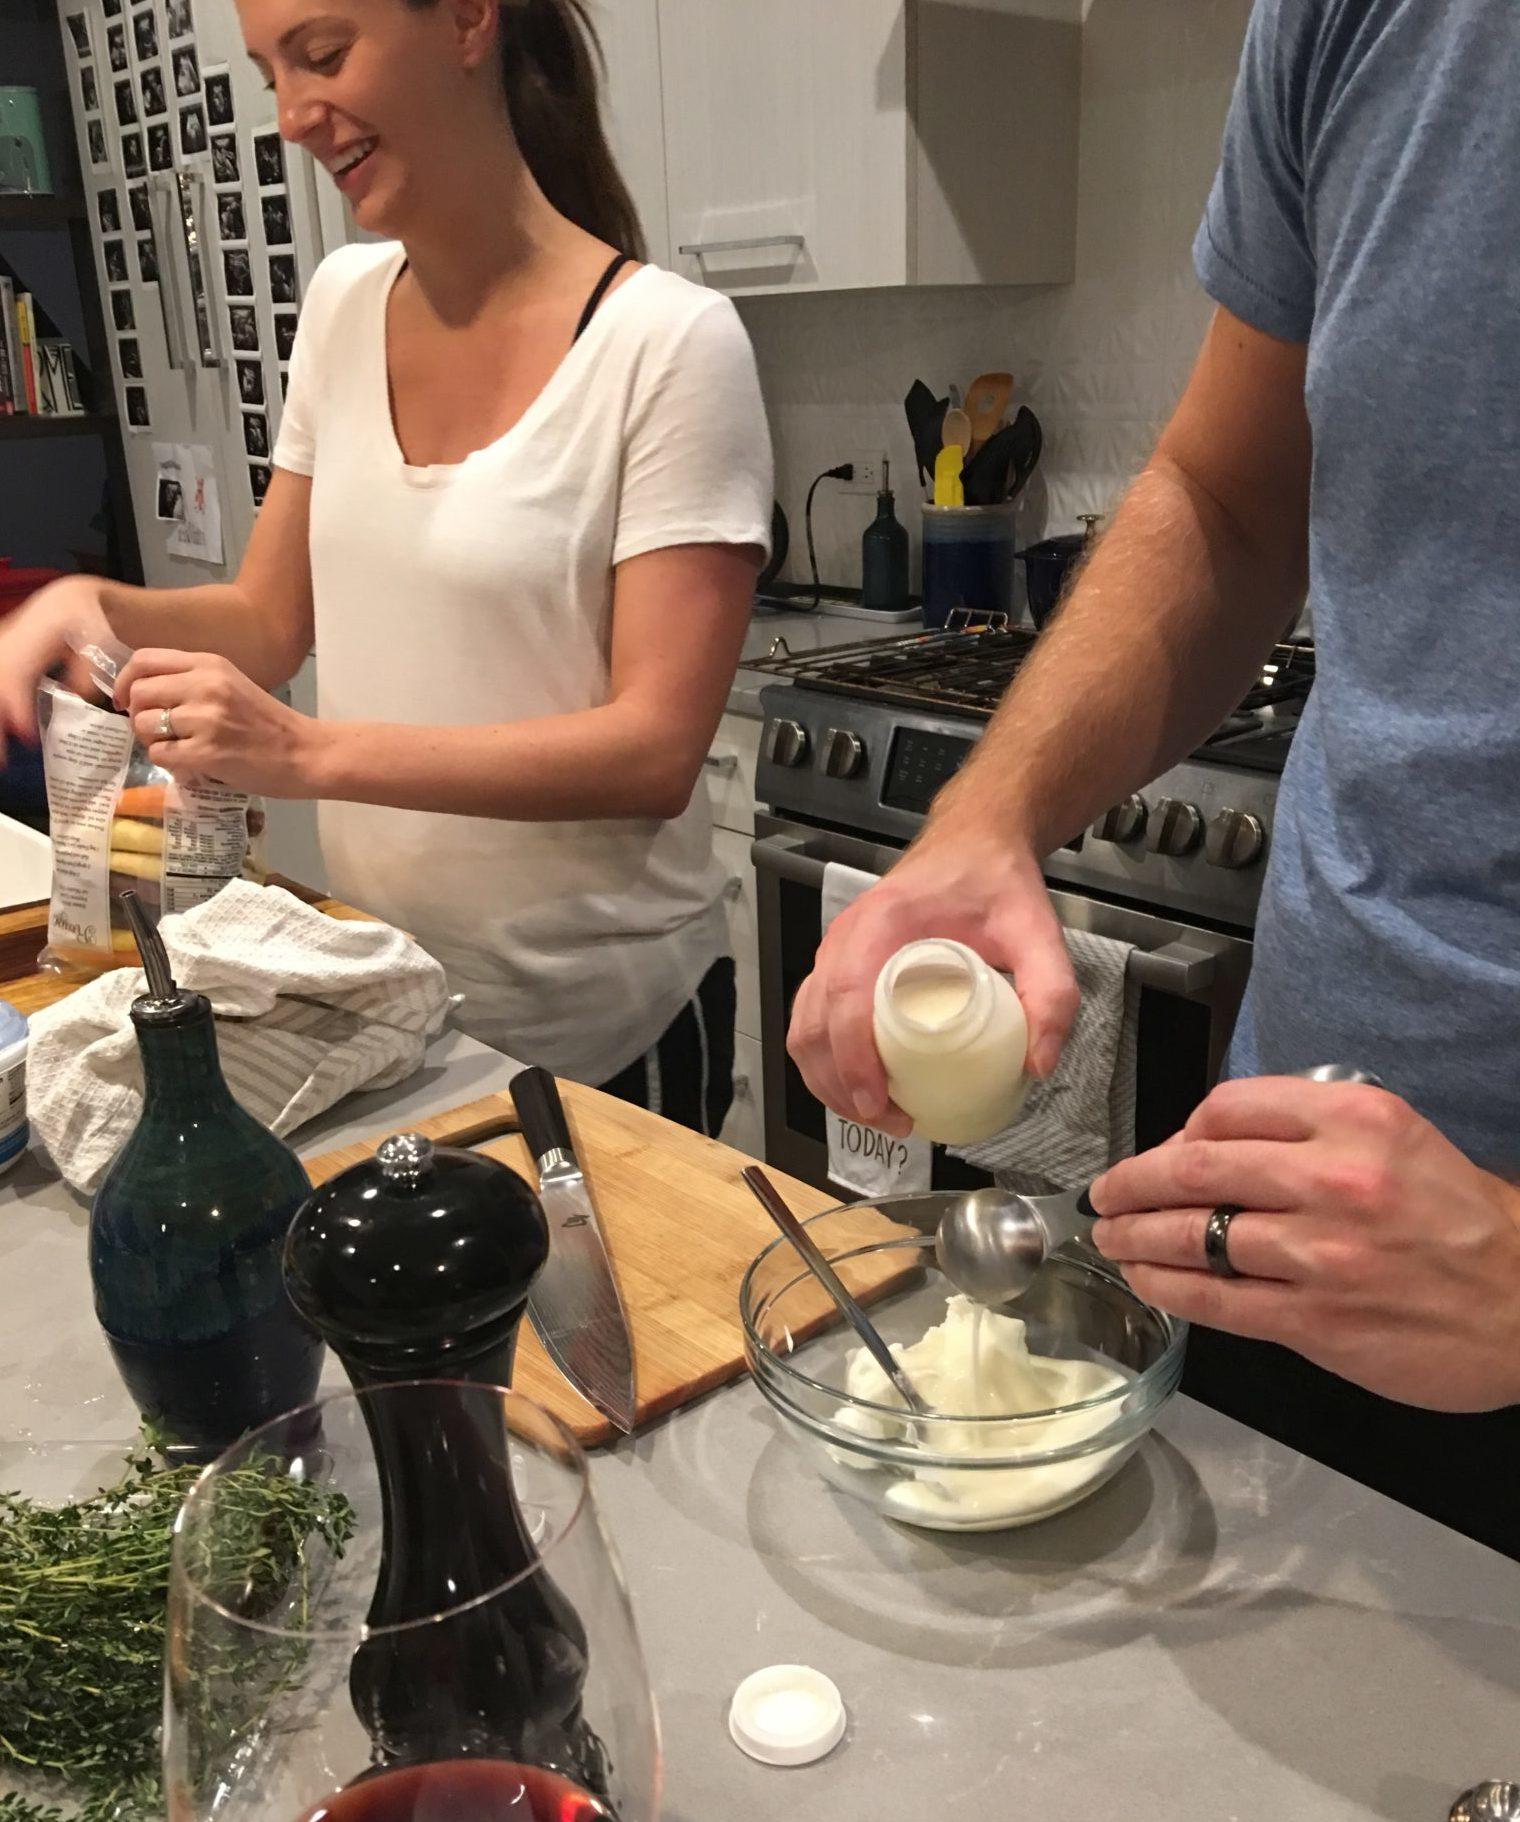 Work together in the kitchen